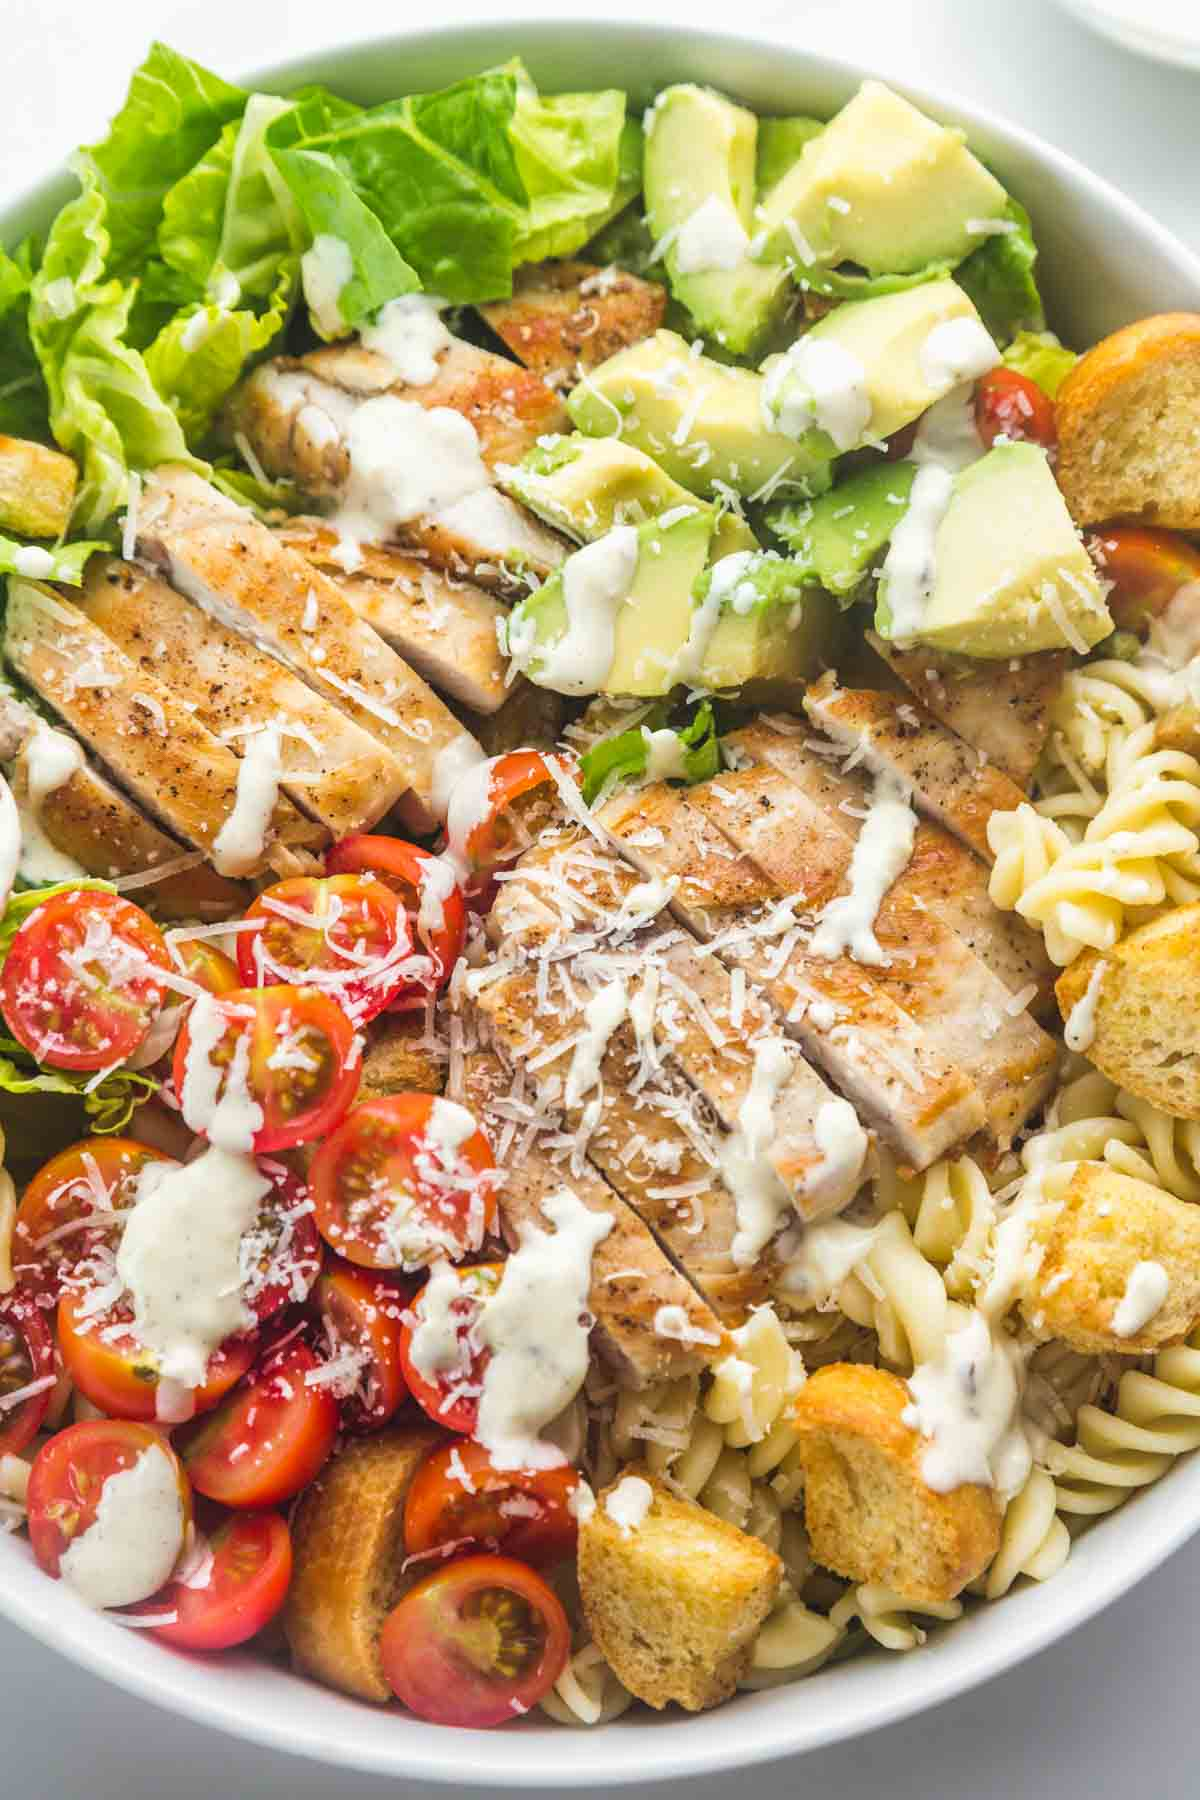 Caesar pasta salad with grilled chicken in a salad bowl, drizzled with caesar dressing